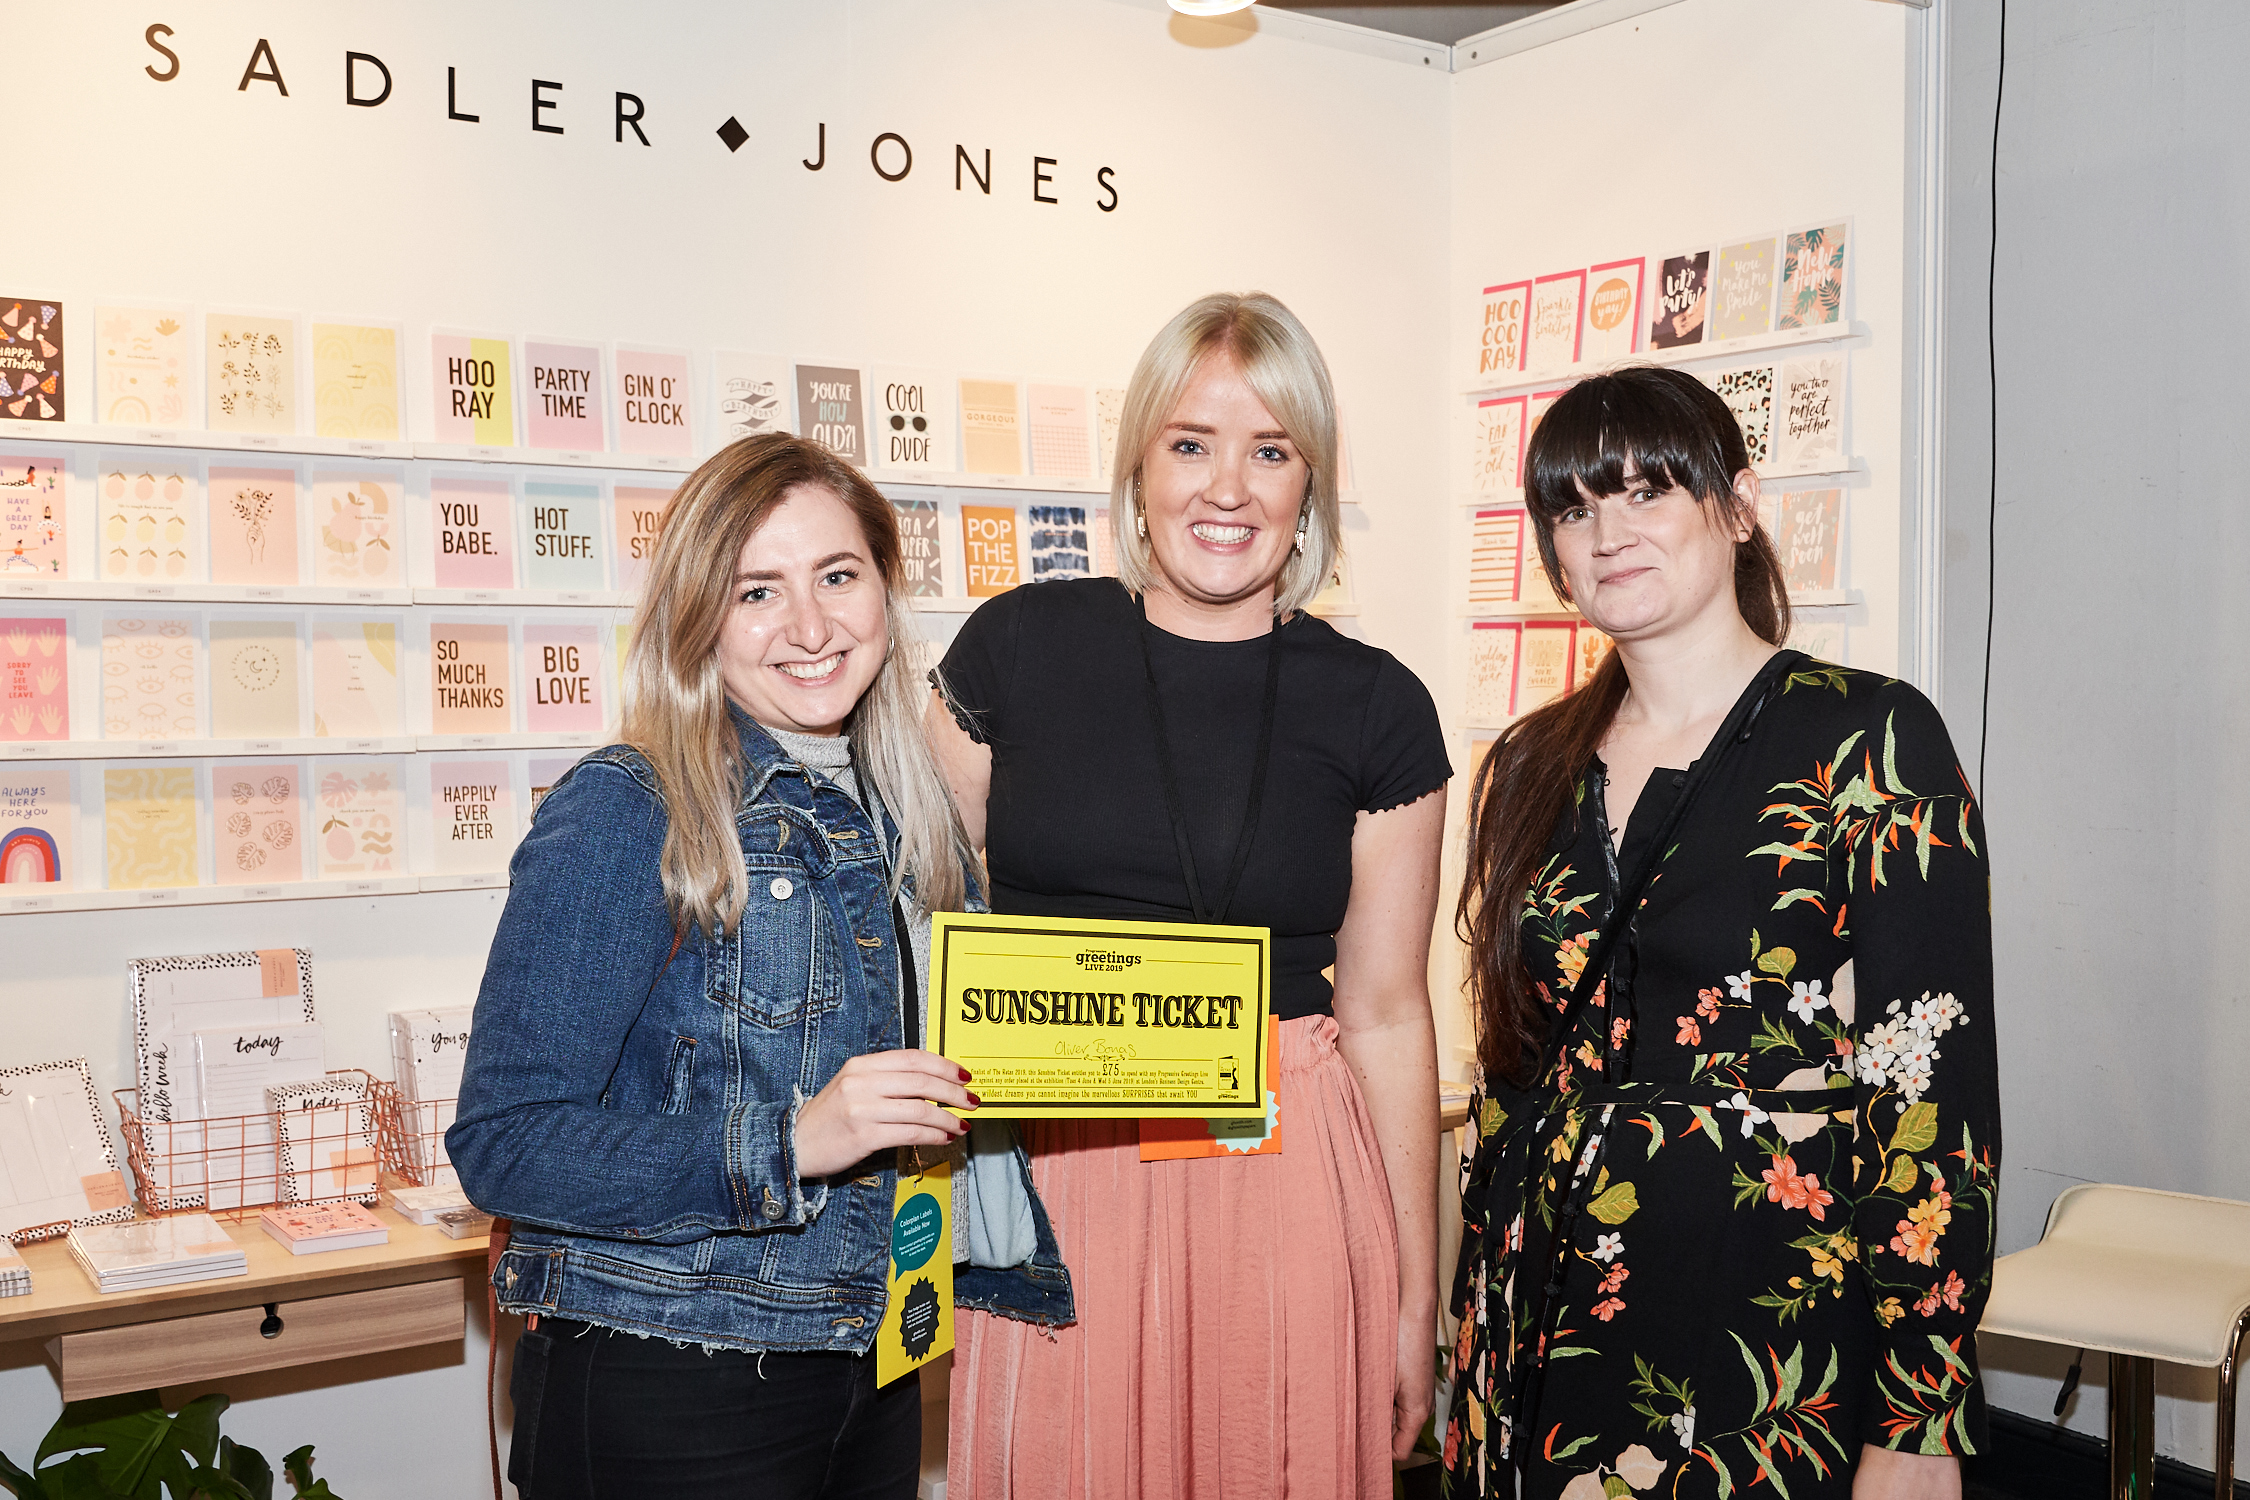 Above: Sadler Jones' Cath Jones (centre) was delighted when Natalia Kostereska (left) and Siobhan Watkins bounced onto the stand and produced their Sunshine Ticket at the show!